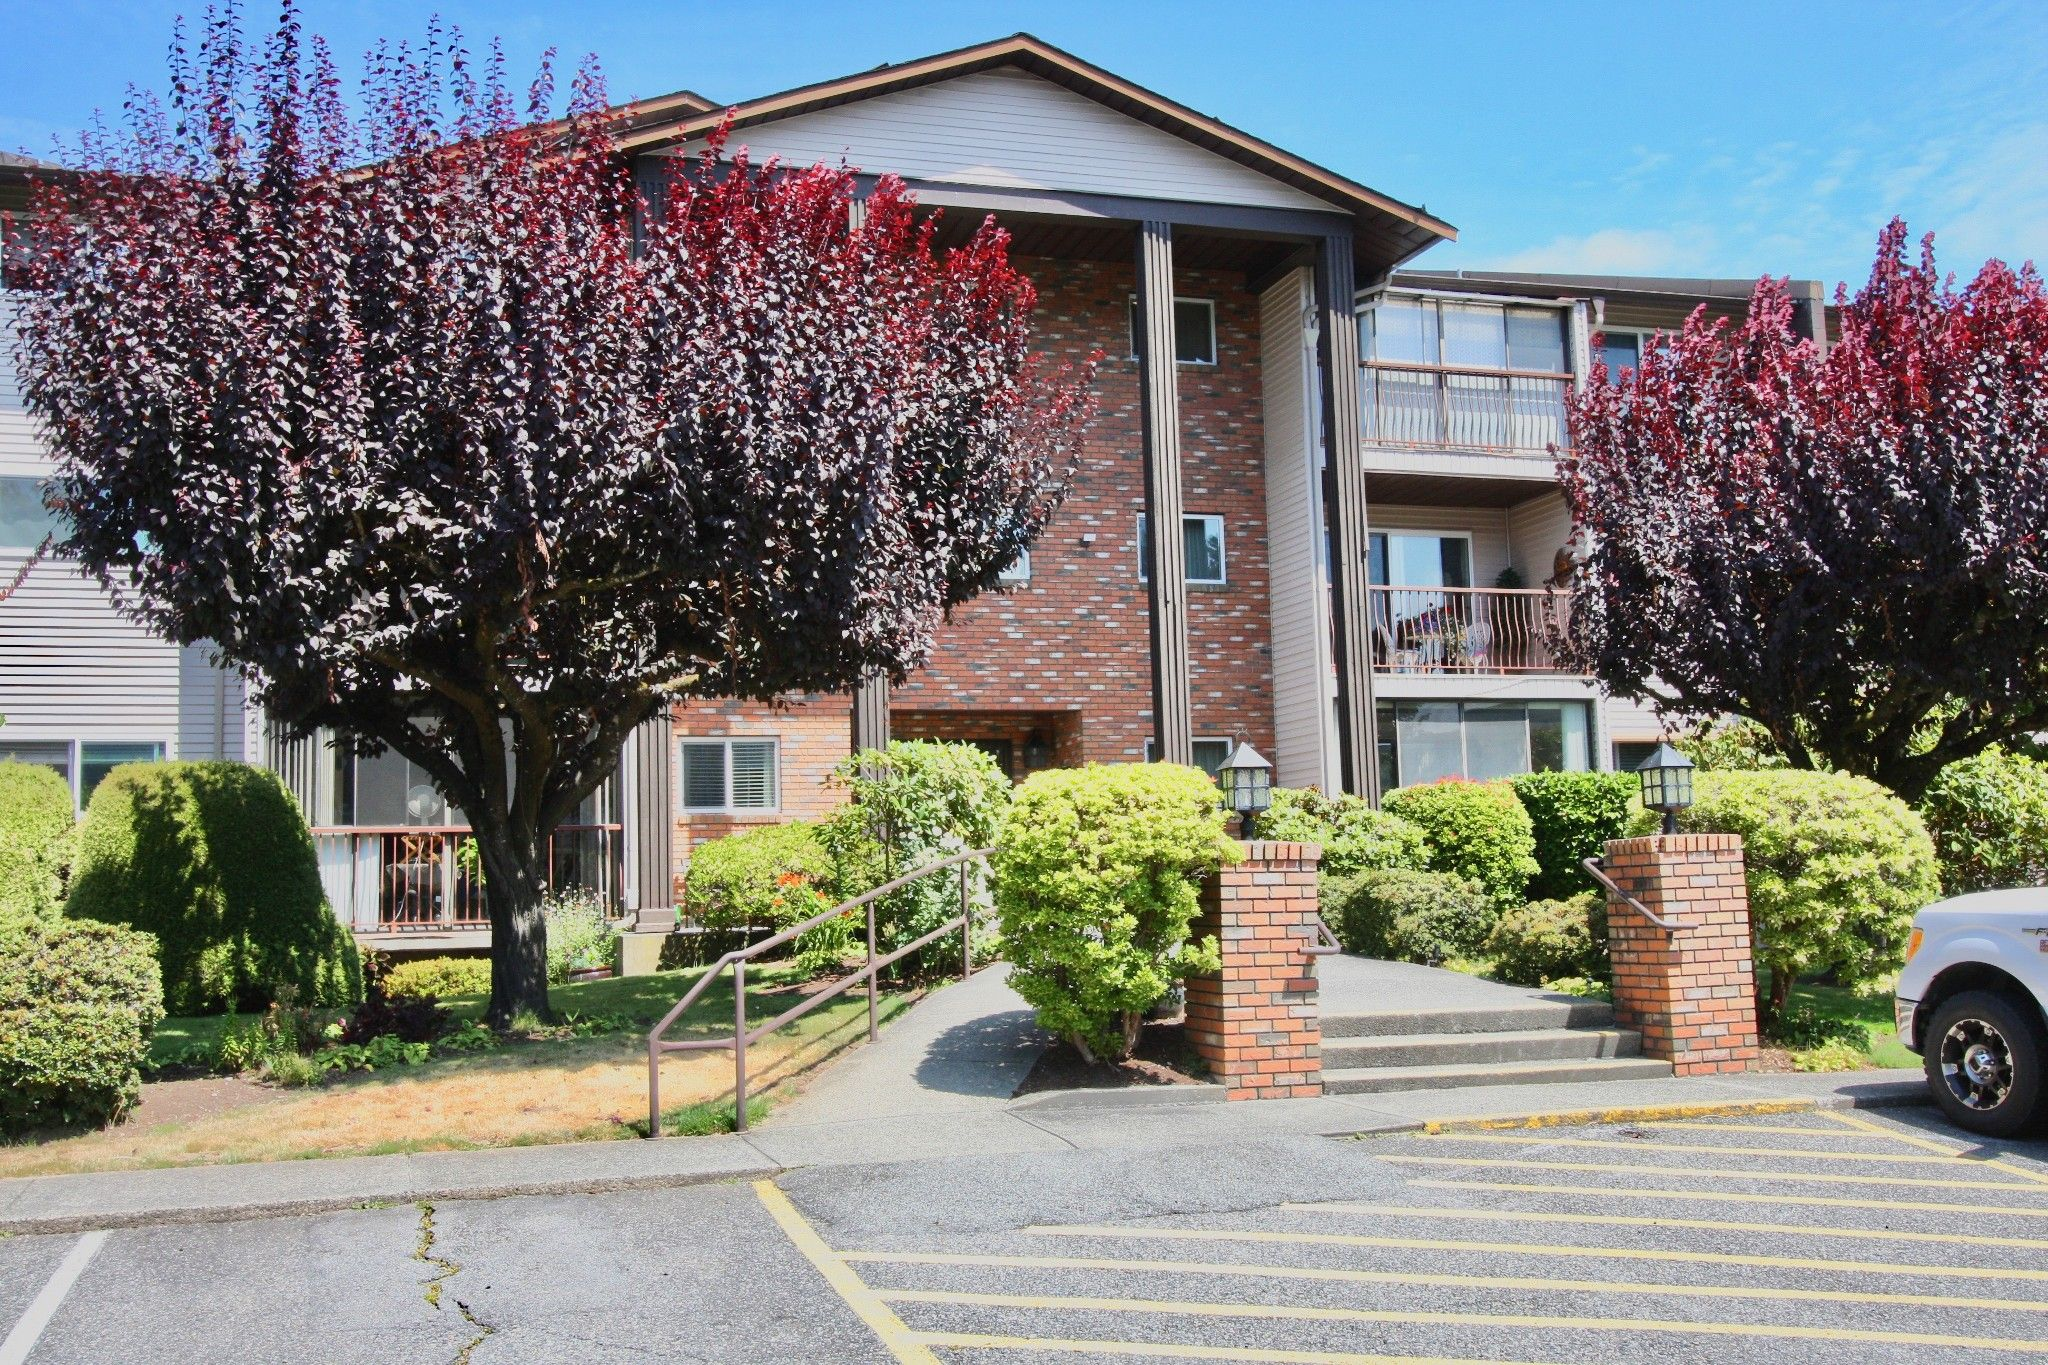 Main Photo: 210 32910 Amicus Place in Abbotsford: Central Abbotsford Condo for sale